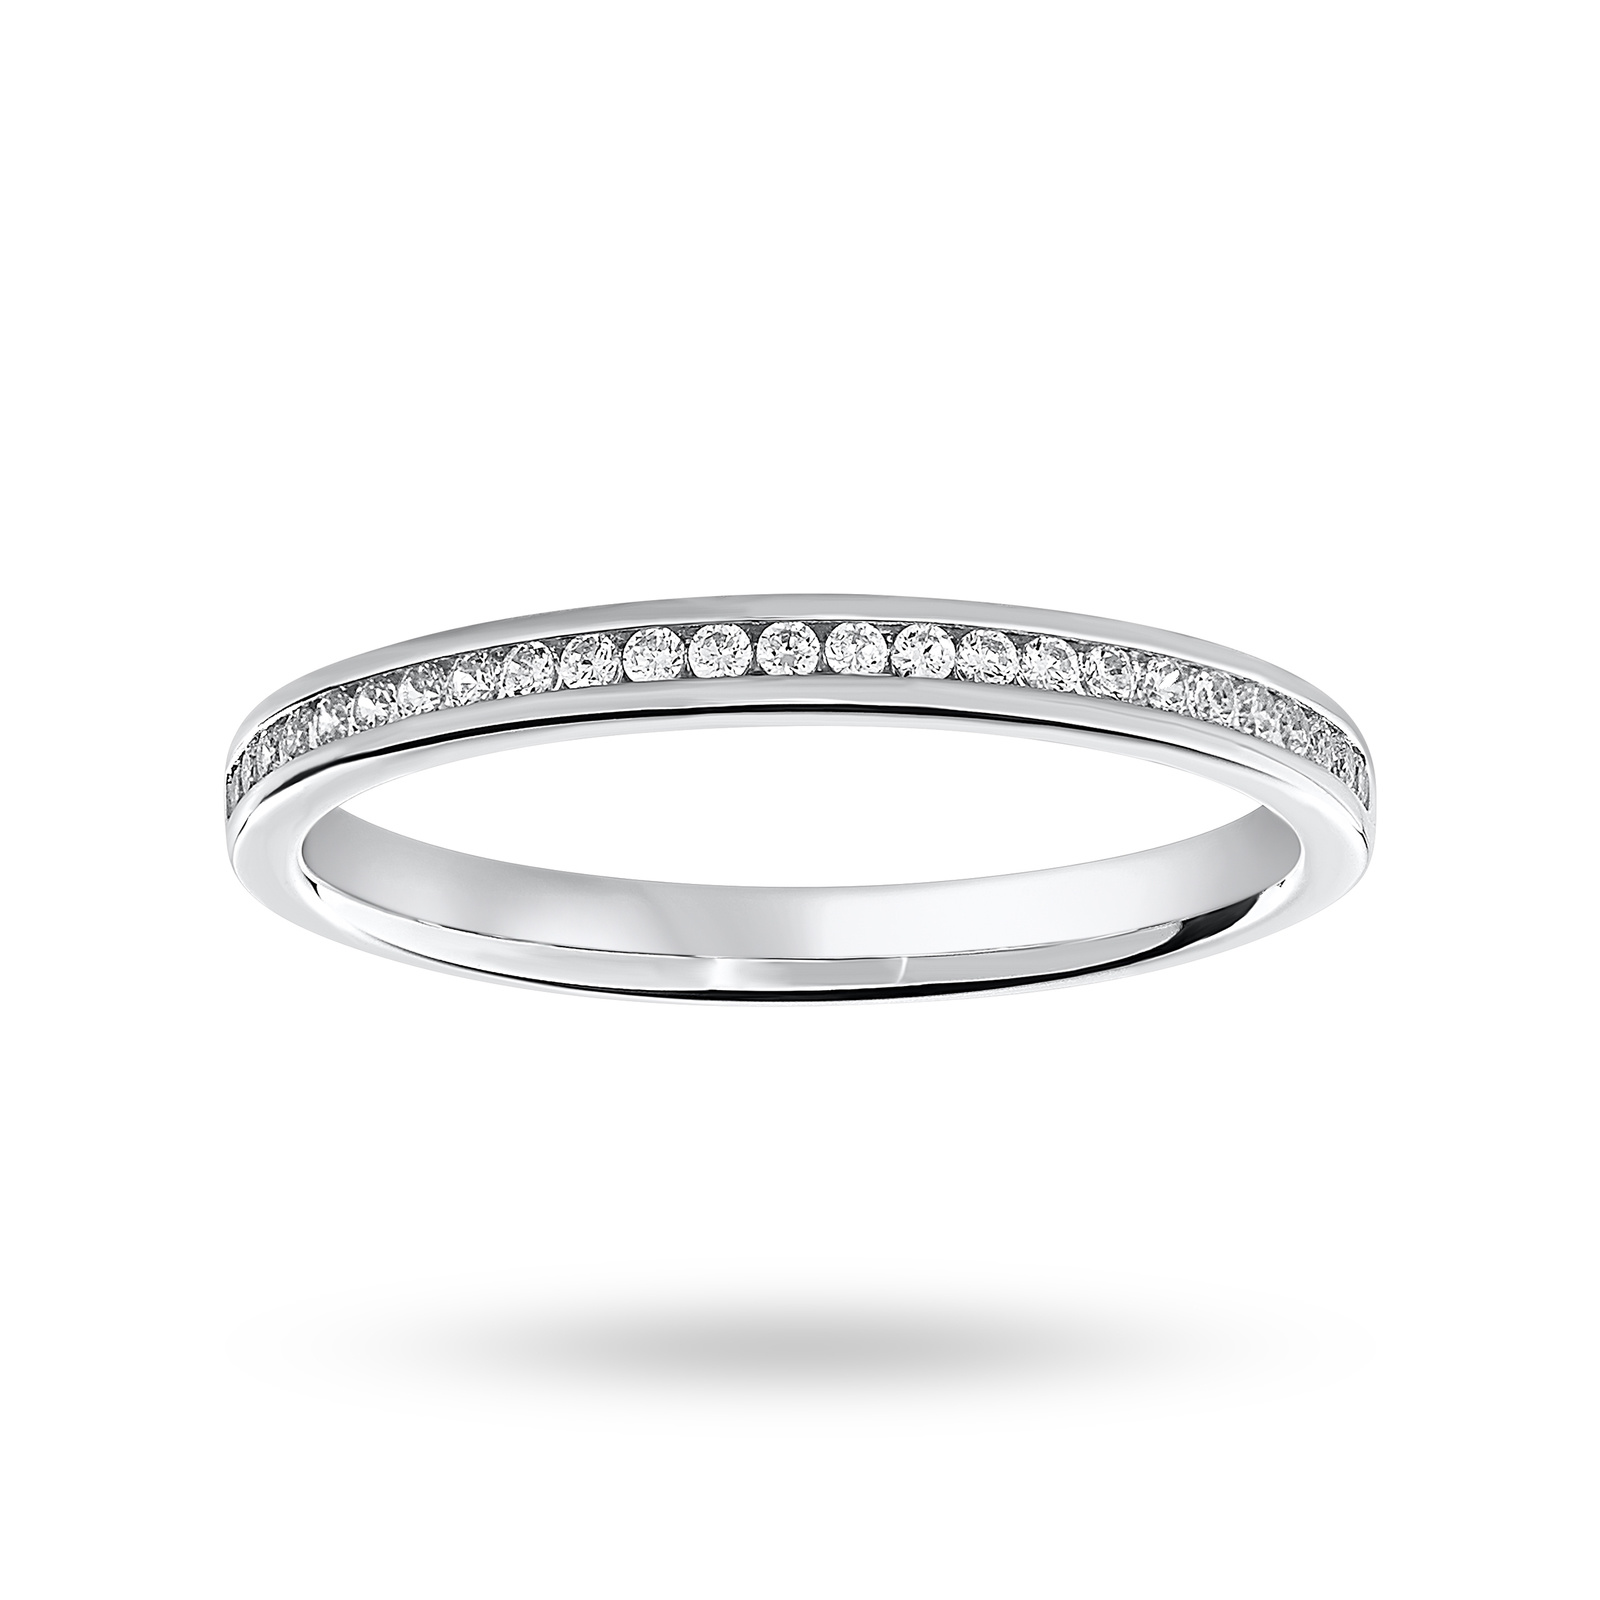 18 Carat White Gold 0.12 Carat Brilliant Cut Half Eternity Ring